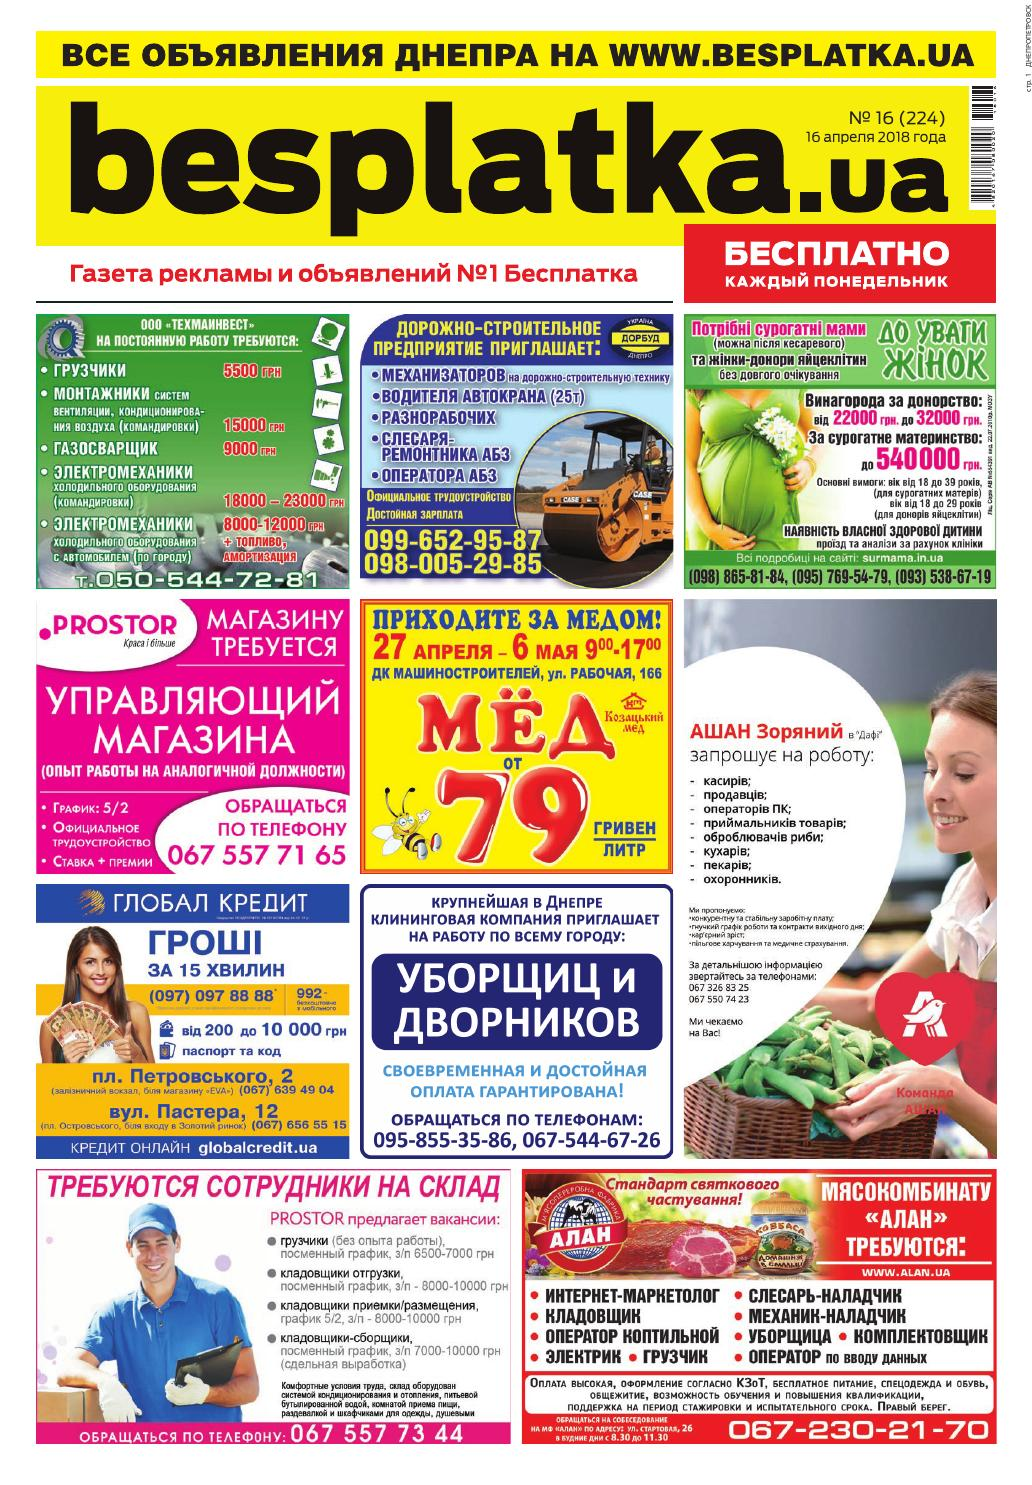 Besplatka  16 Днепр by besplatka ukraine - issuu d7793385741b1